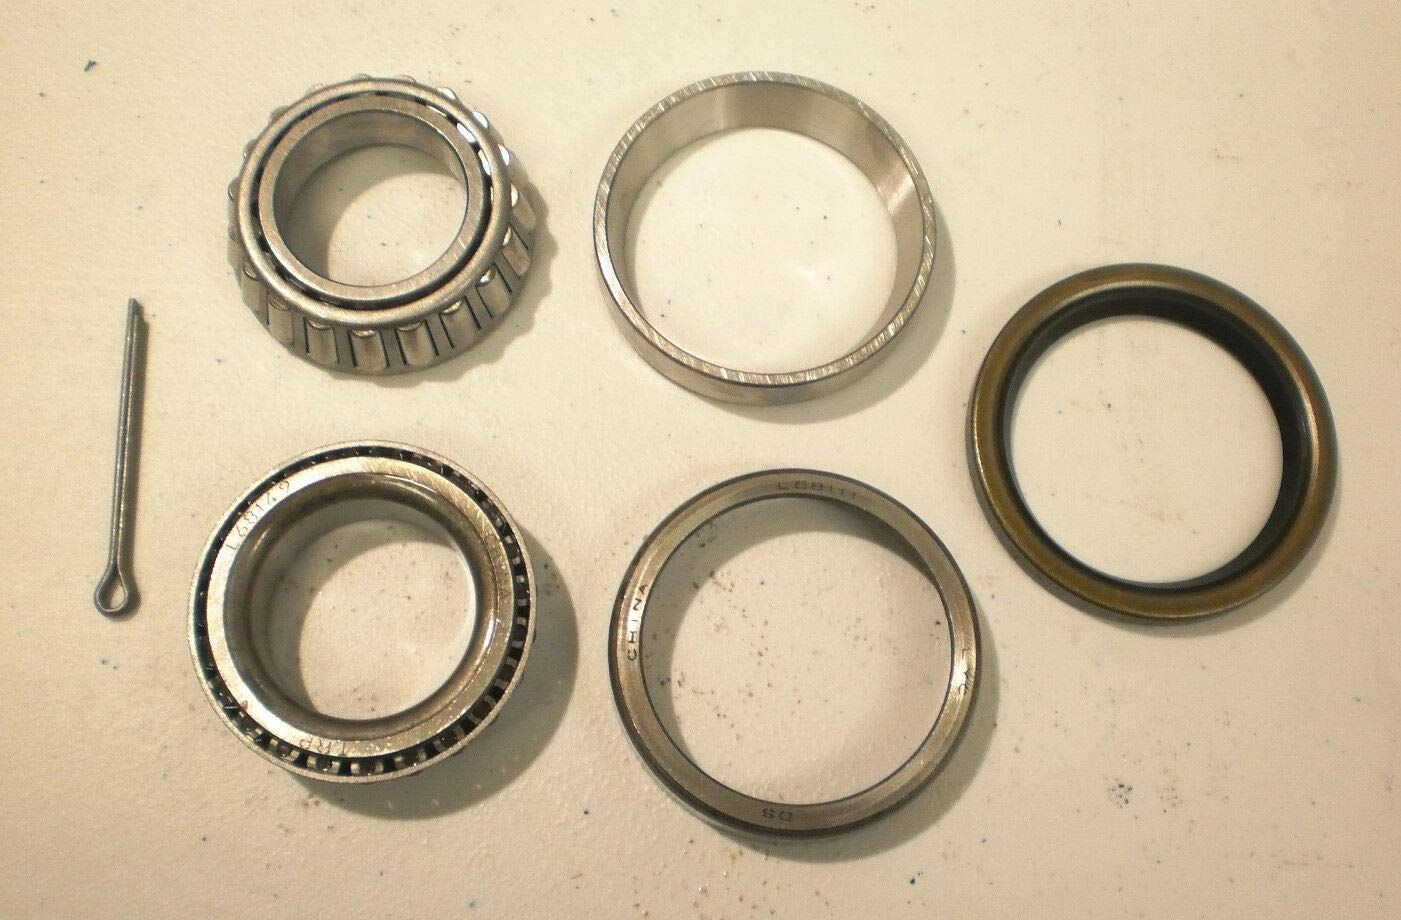 unbrand Mobile Home Trailer Axle Wheel Bearing kit 10-41 40 Seal 1.25''+1.37'' Dexter Axel by unbrand